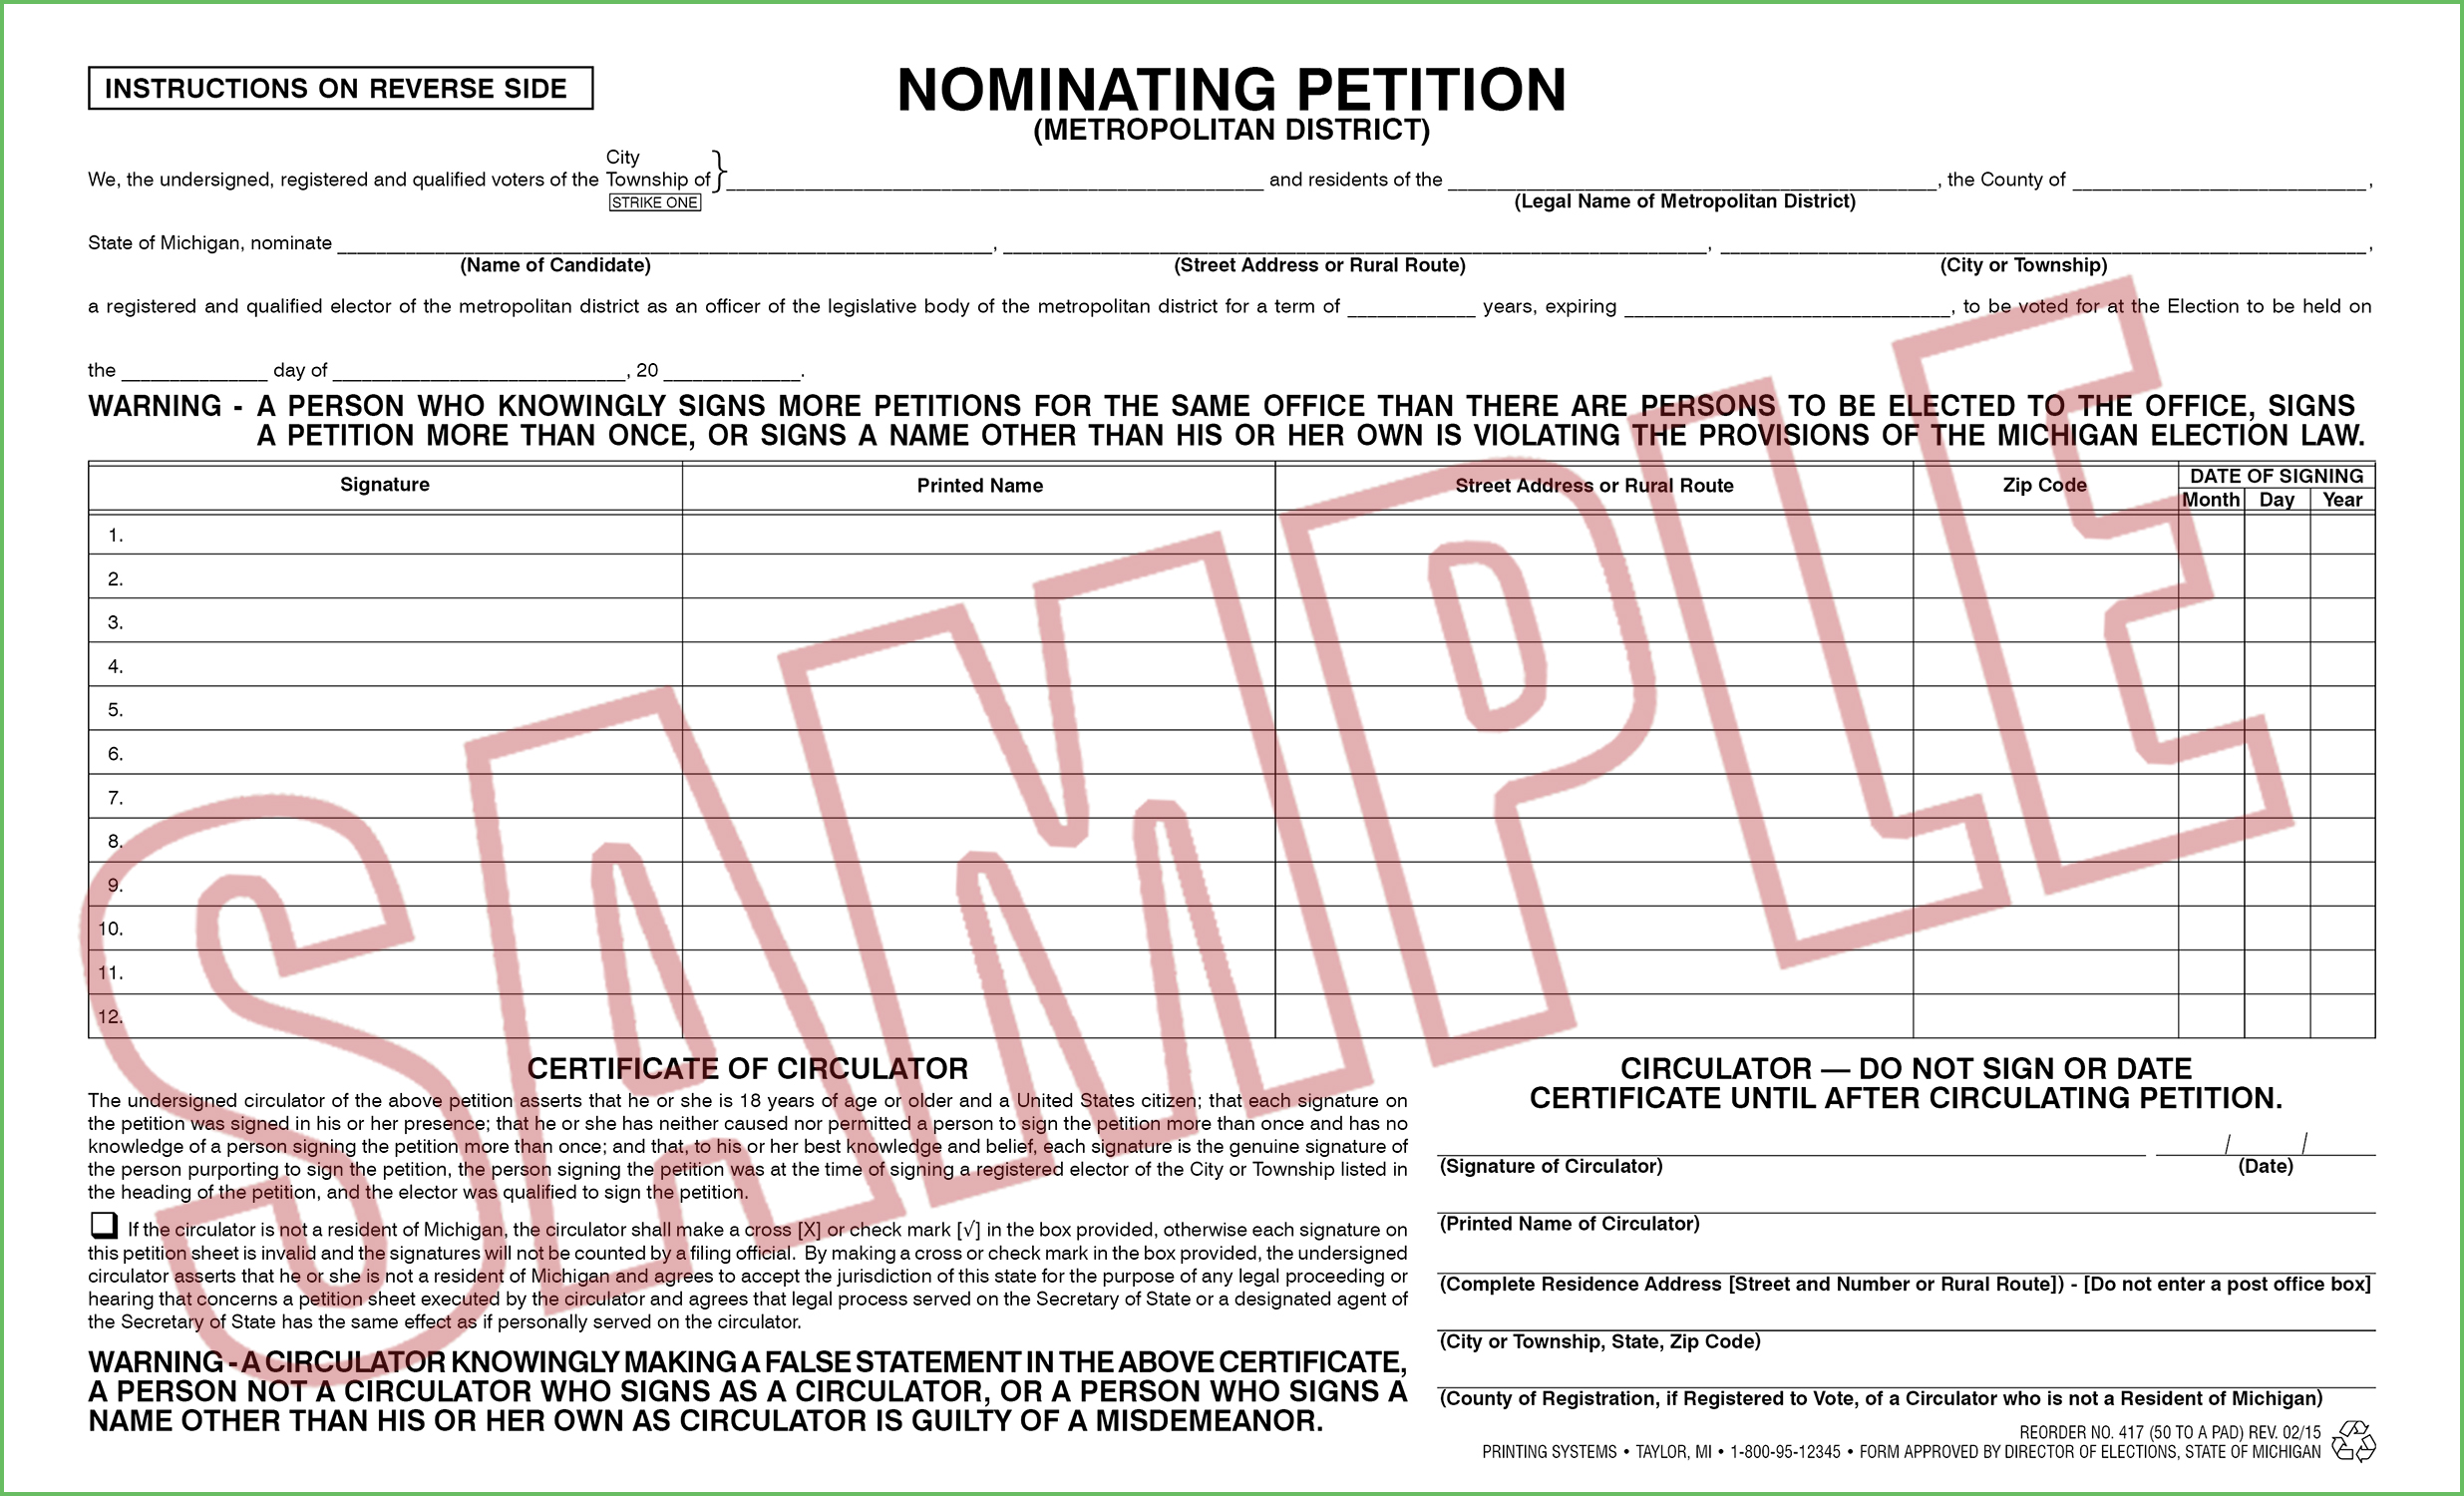 417 Nominating Petition - Metropolitan District (50 per pad) Rev. 02/15